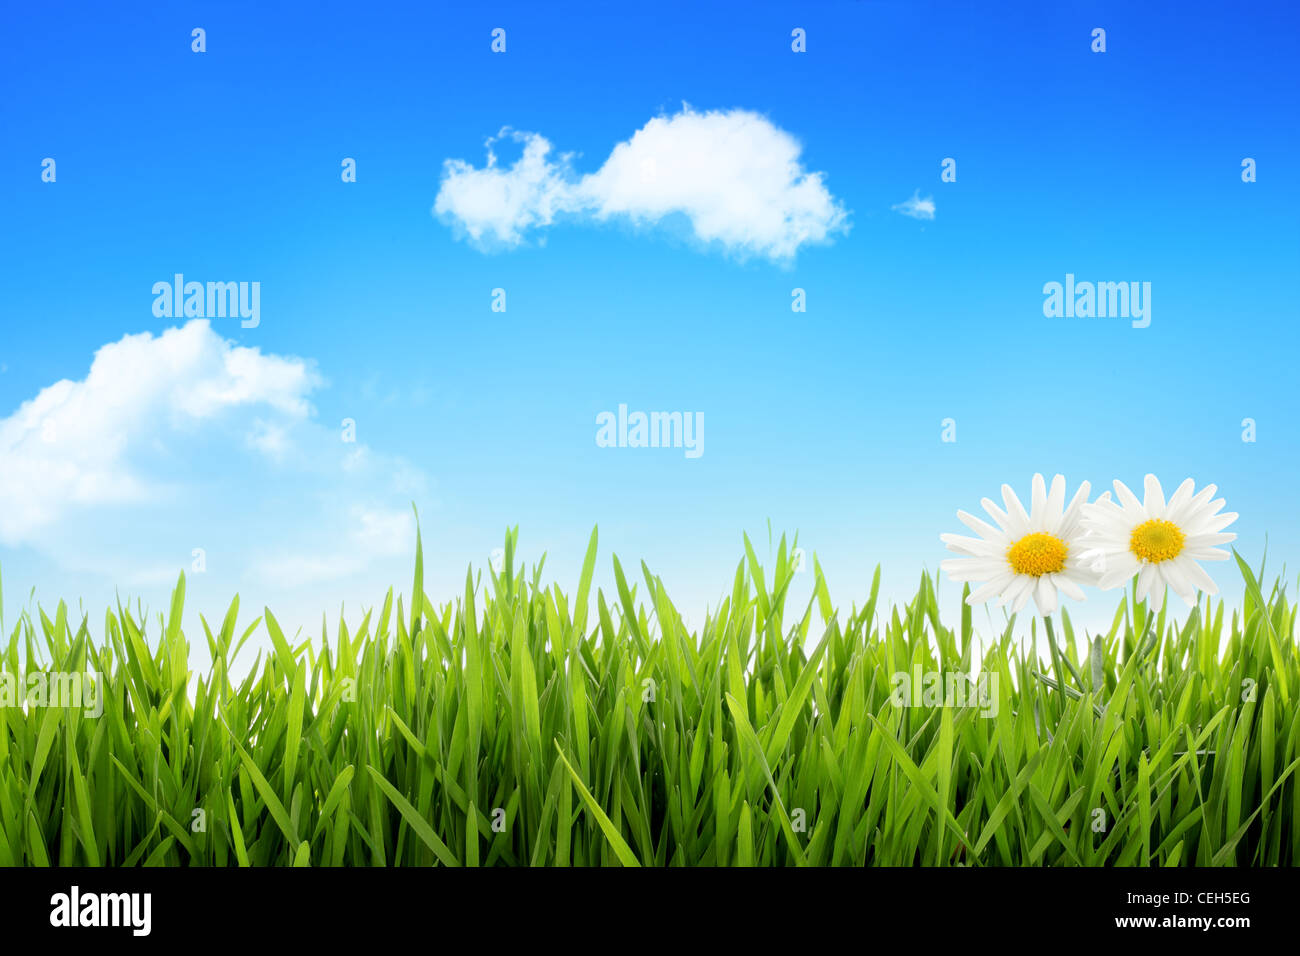 White daisy in grass against blue sky - Stock Image